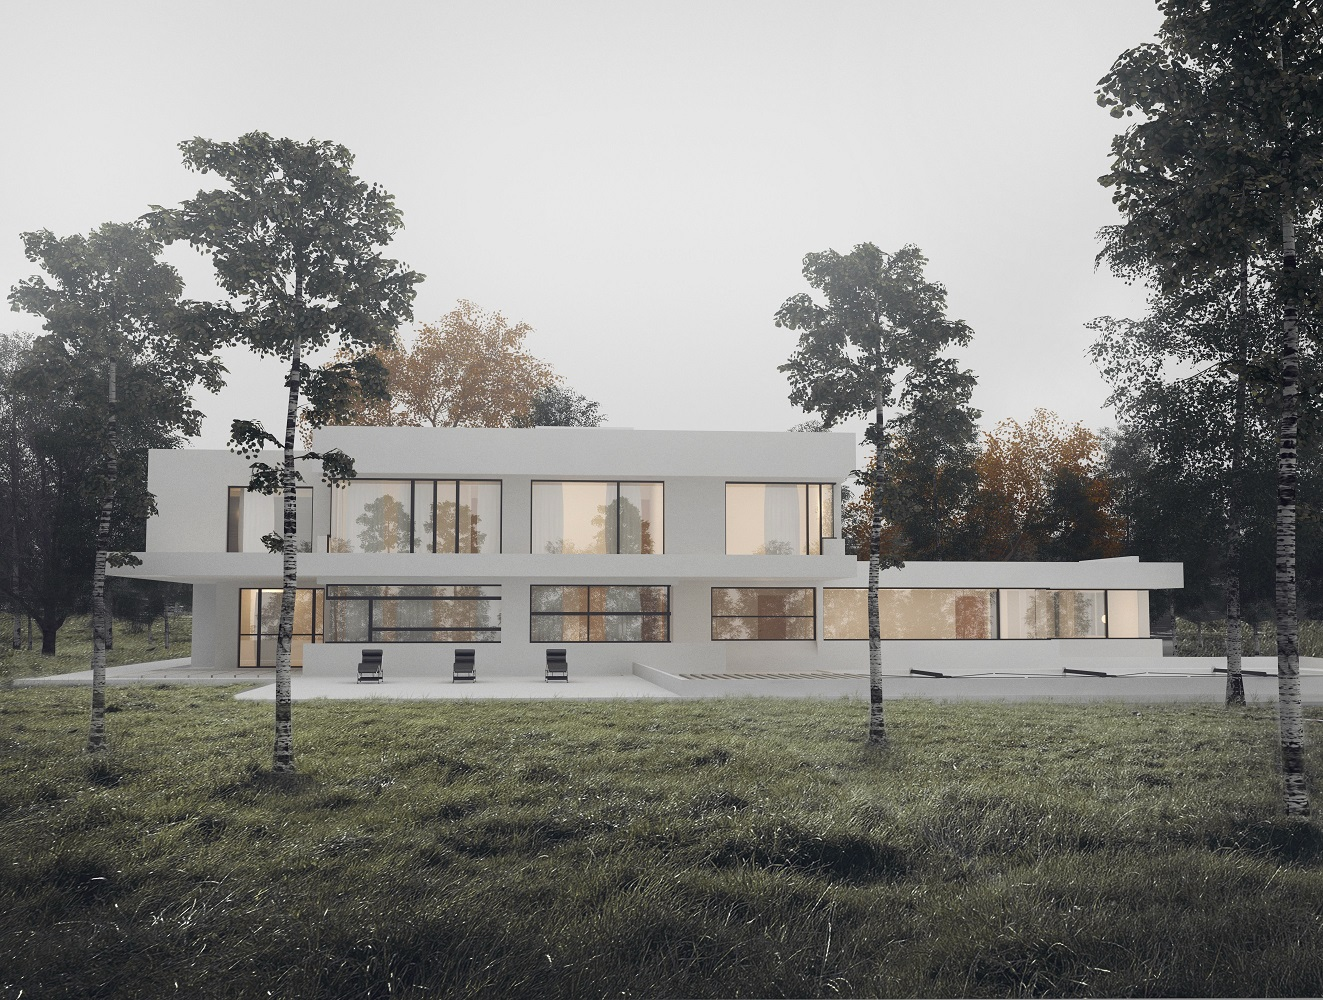 http://miragearchitects.ir/index.php/projects/design-proposal-for-design-a-beautiful-house-competition/